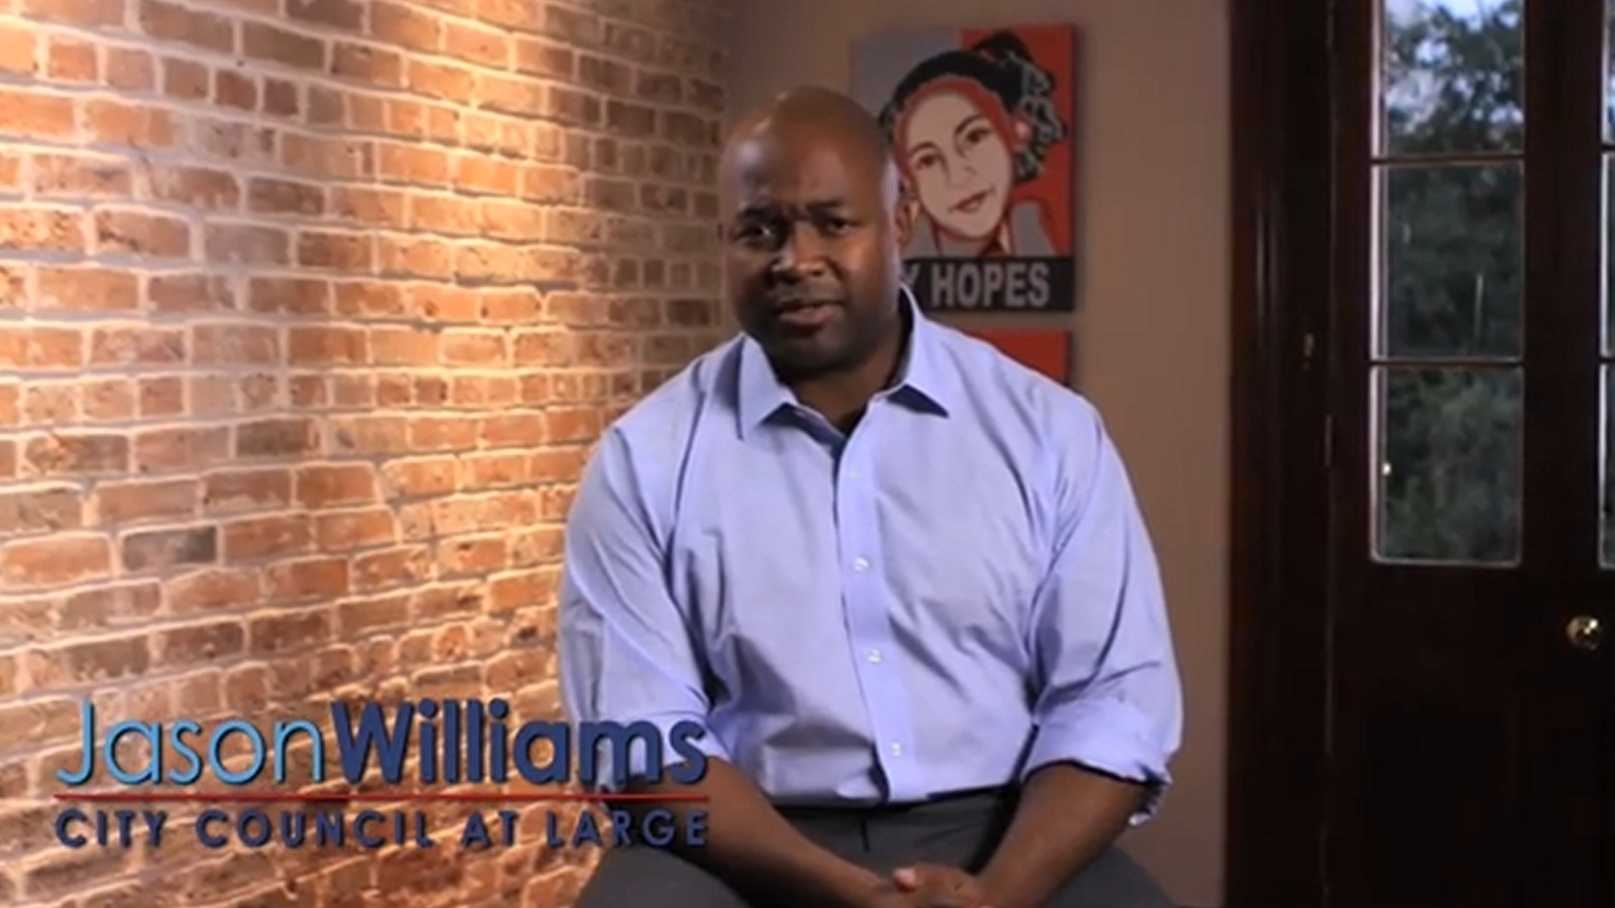 Attorney Jason Williams announced his bid to run for the Council At Large seat in a video posted to YouTube.